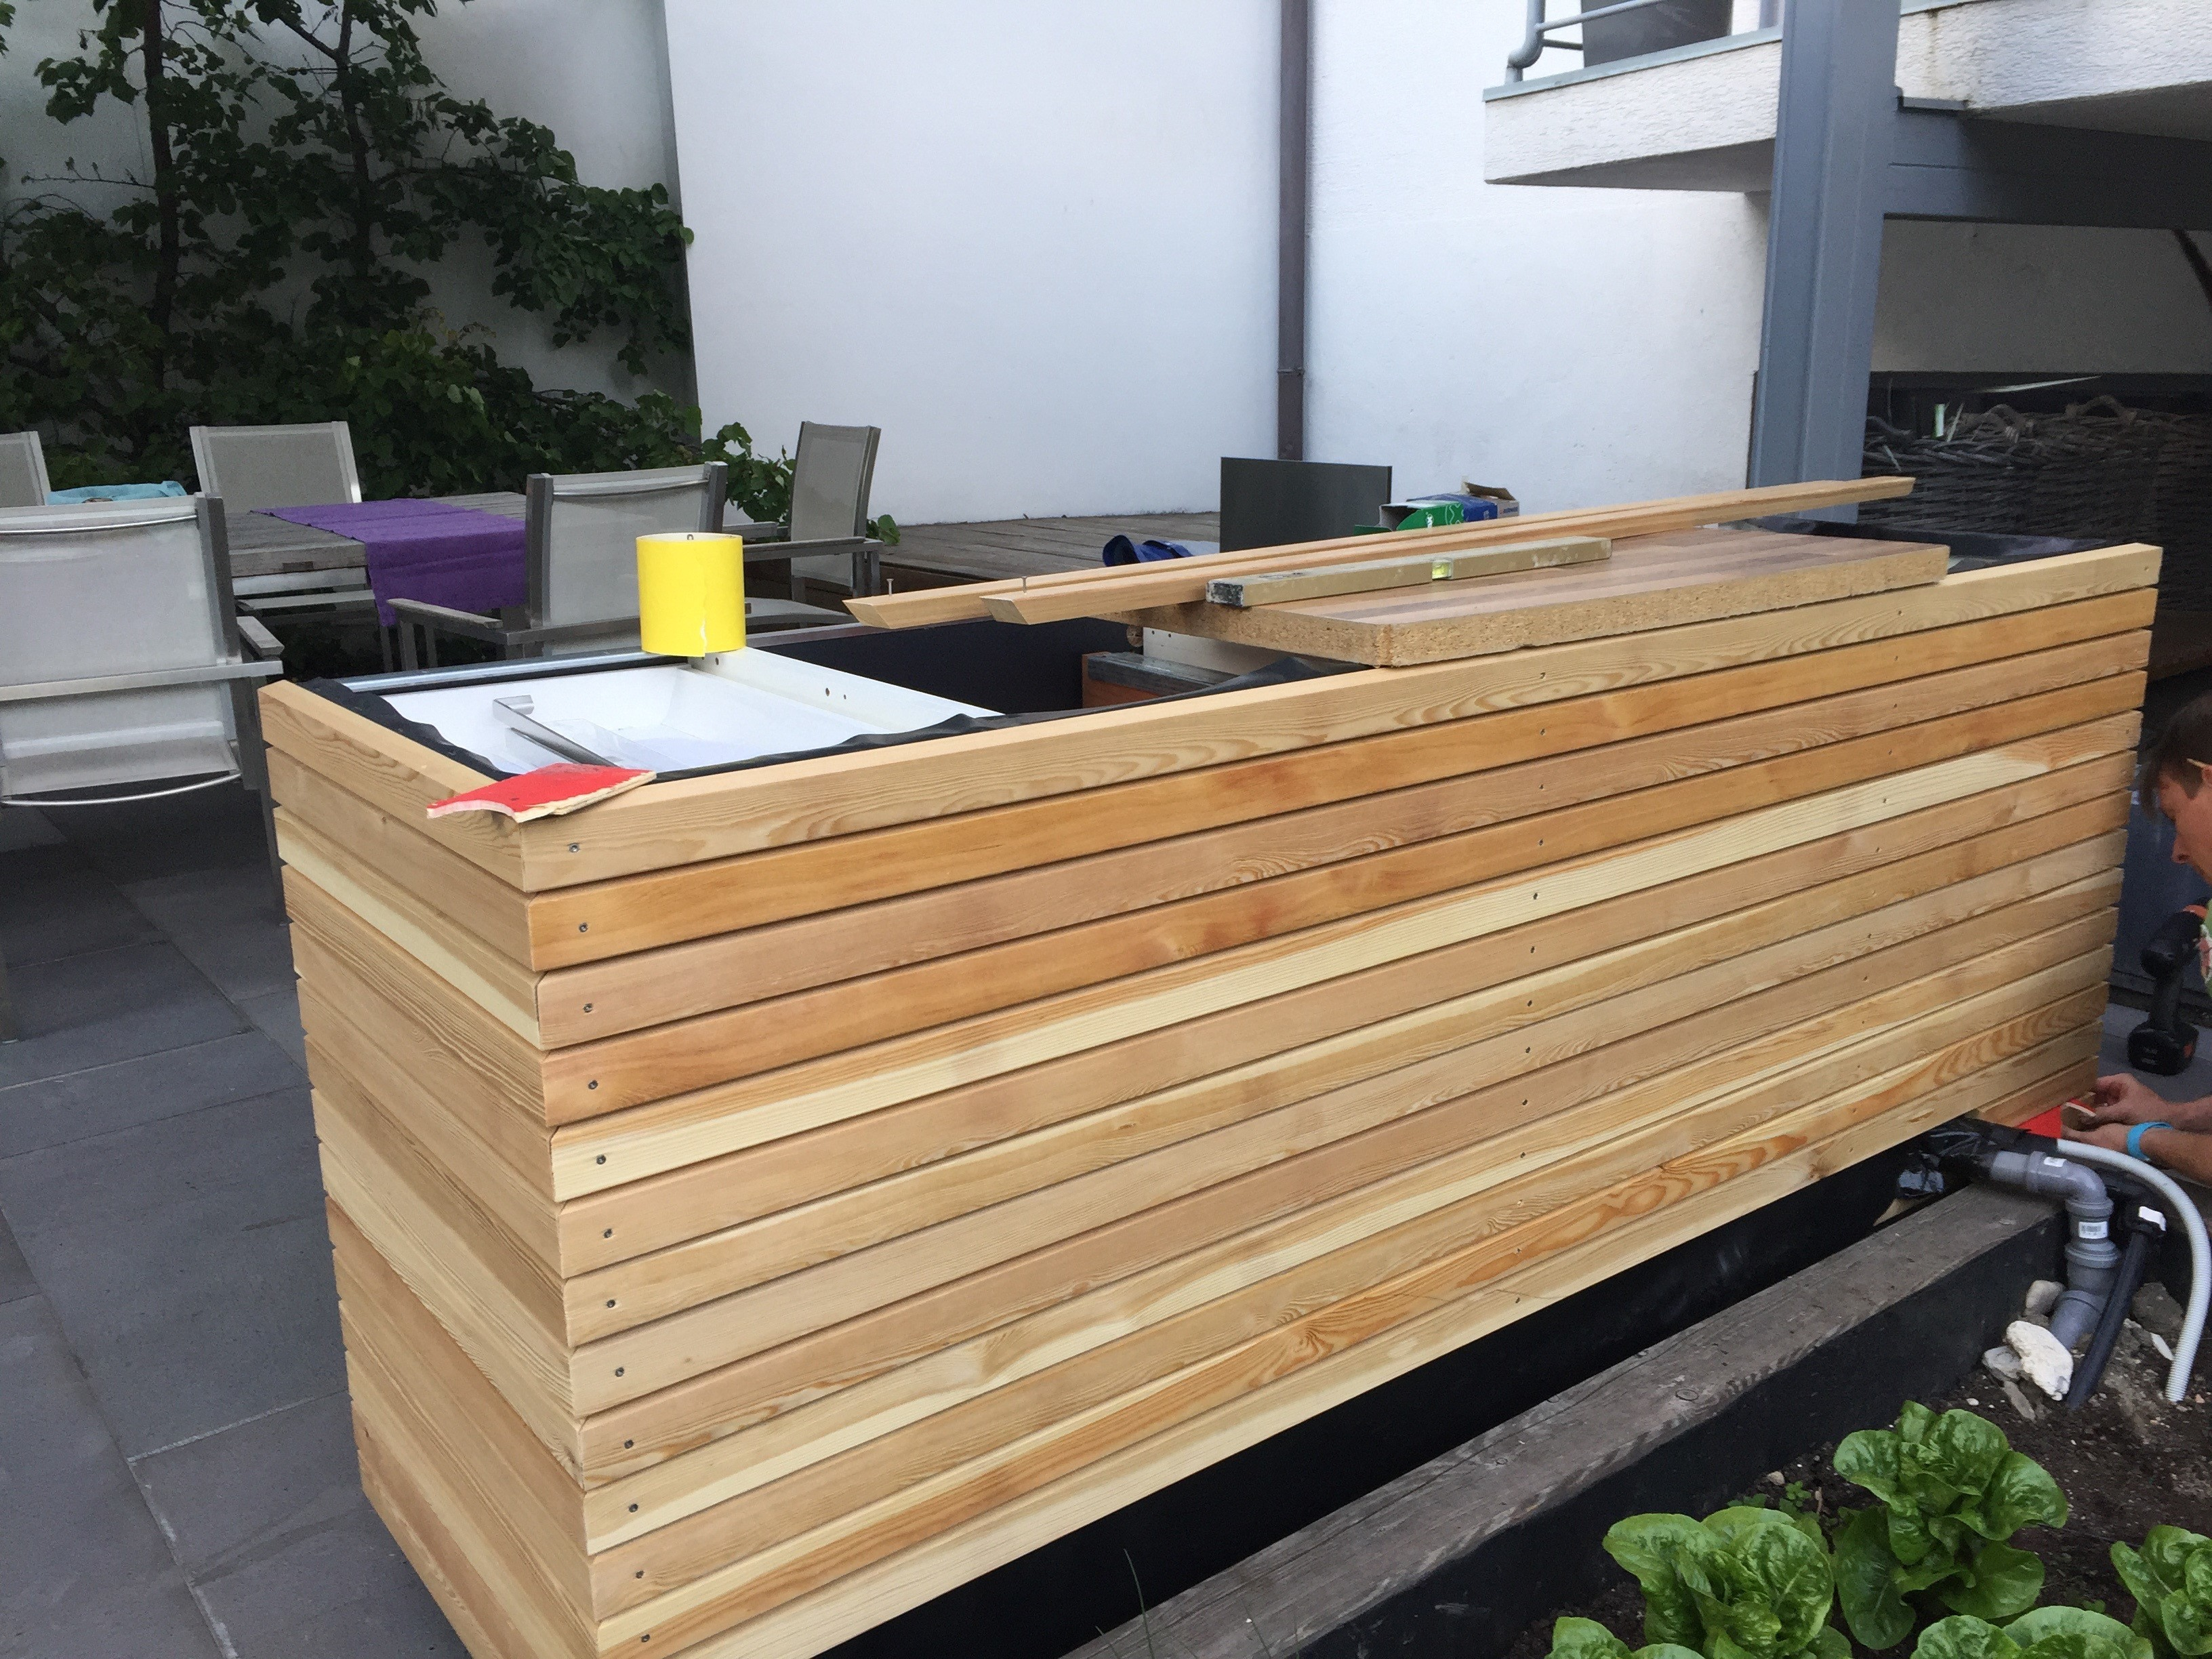 Outdoor Küche Unterschrank : Diy outdoorküche ikea hack rut morawetz